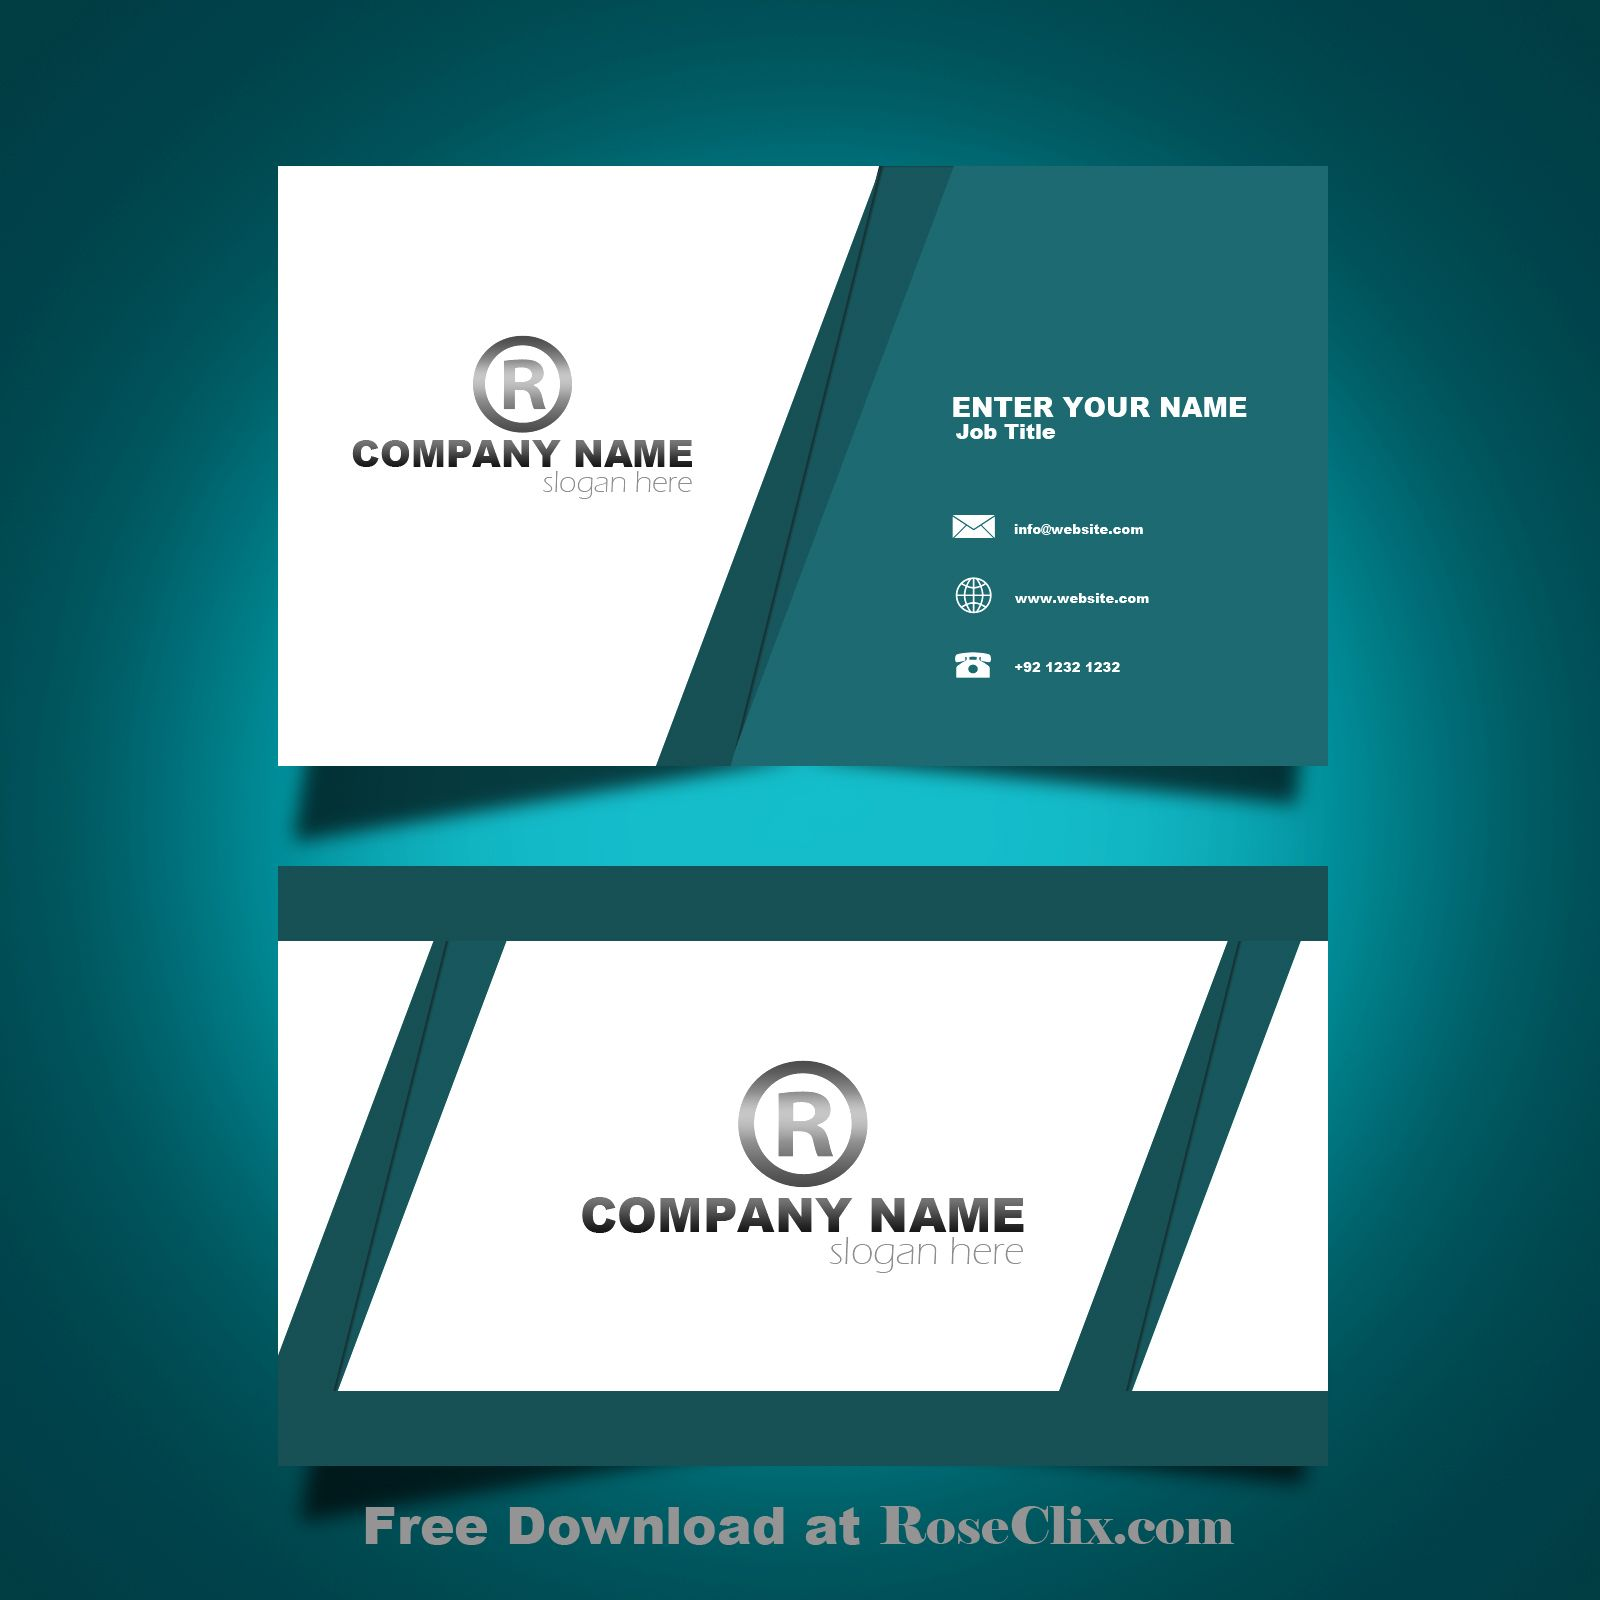 V card design pik free simple template psd business card v card design pik free simple template psd alramifo Image collections